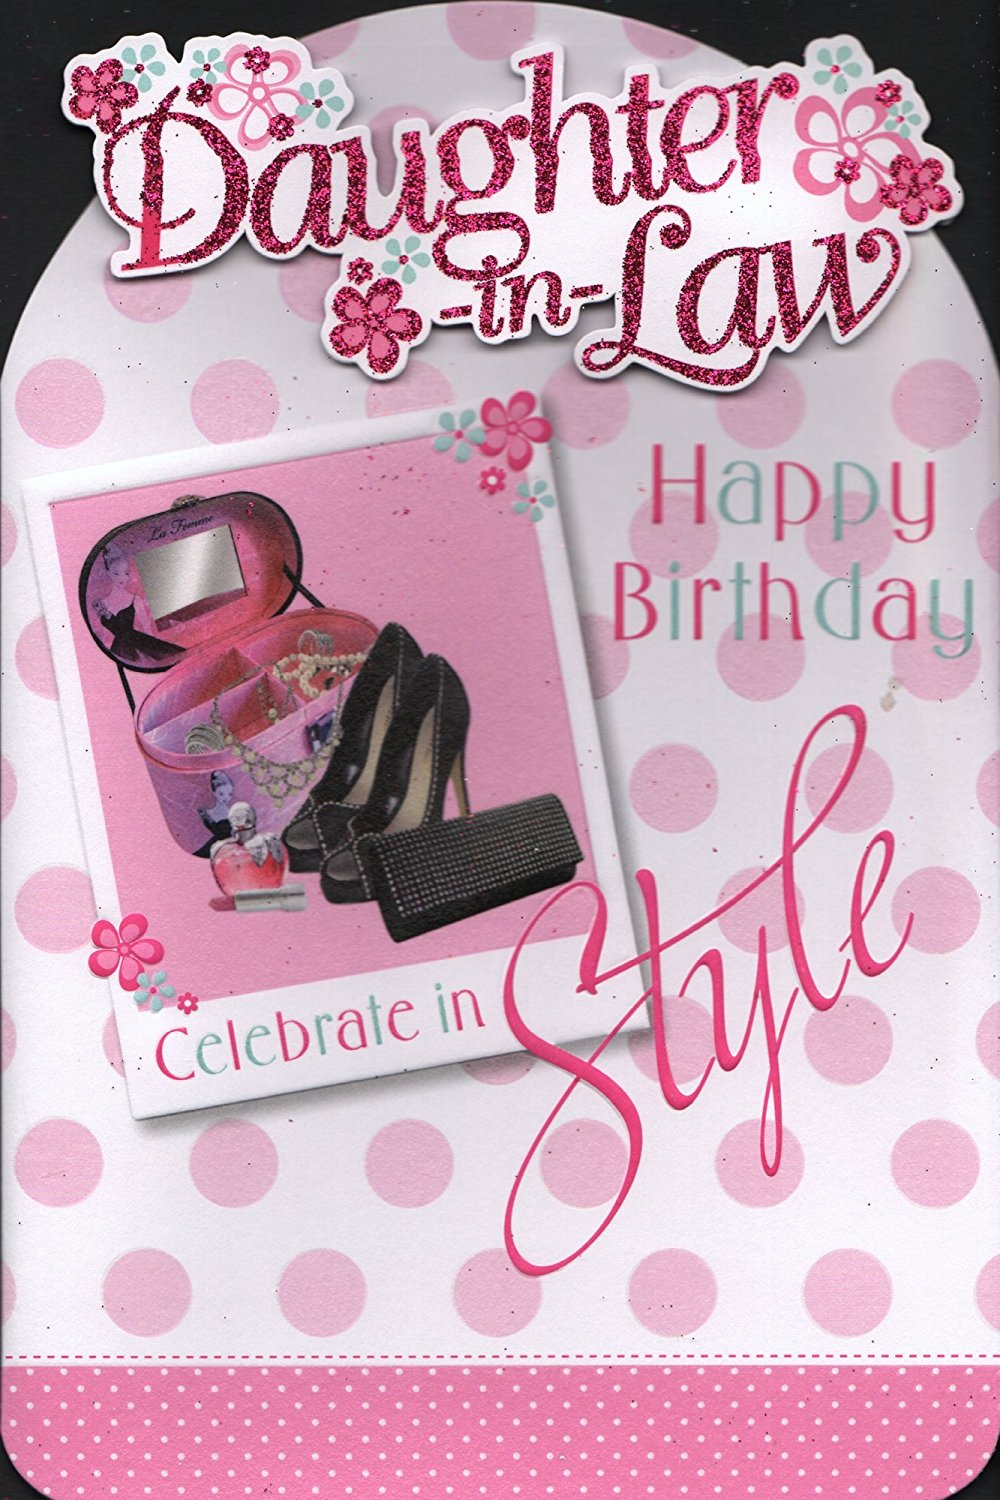 Phenomenal Happy Birthday Daughter In Law Images Free Bday Cards And Funny Birthday Cards Online Elaedamsfinfo